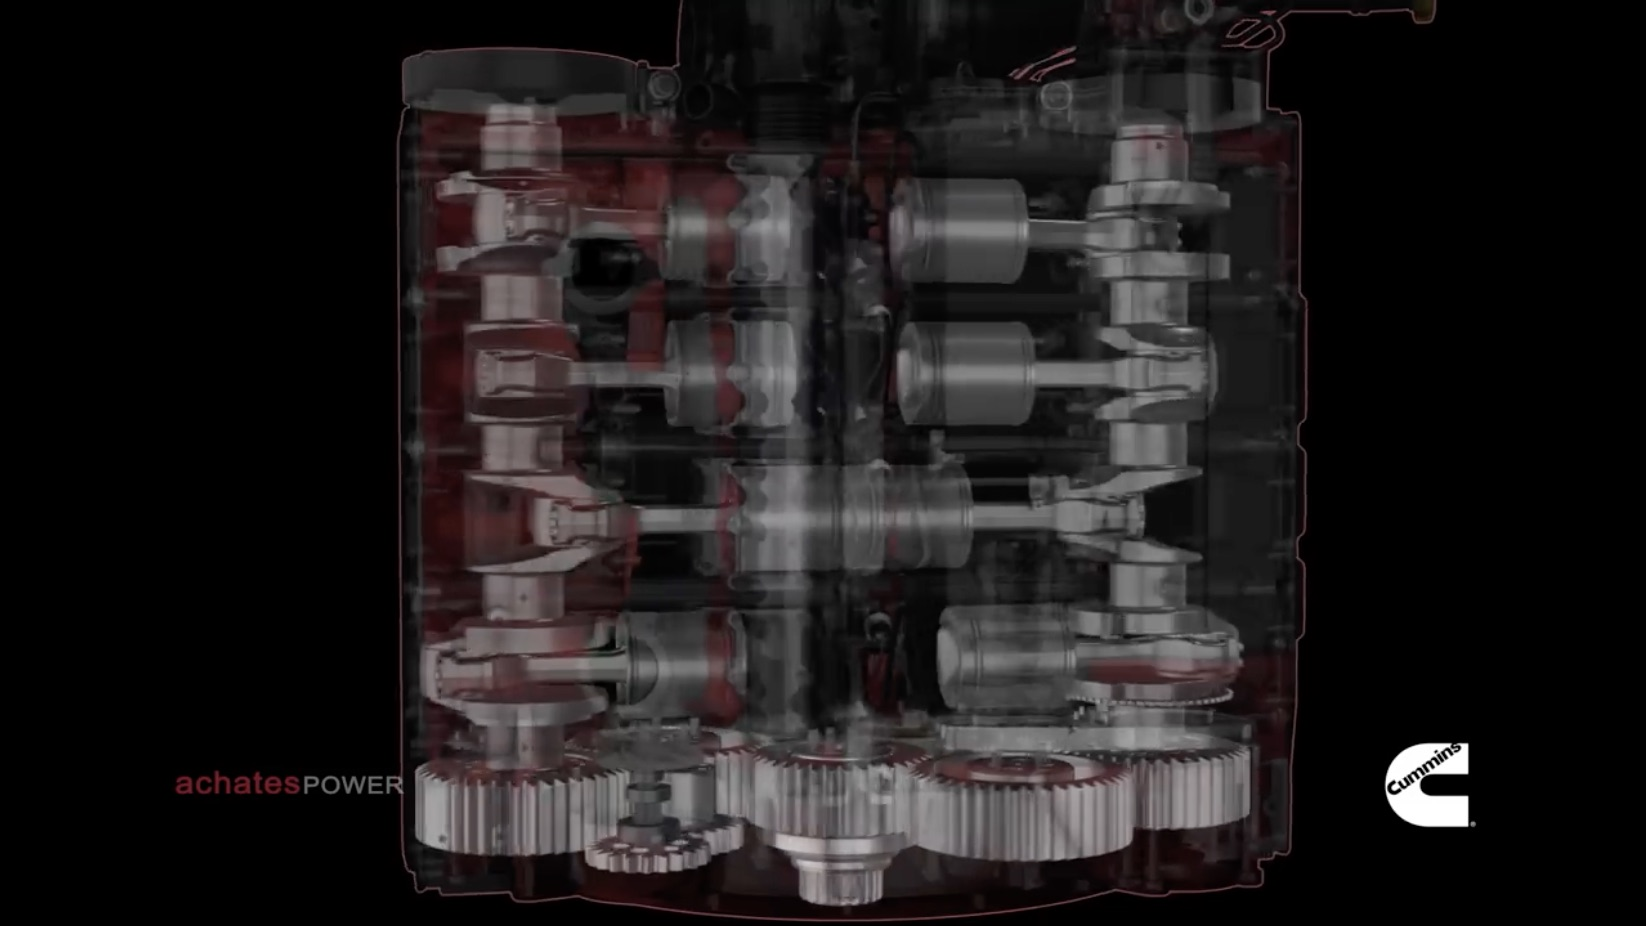 BangShift Question Of The Day: Thoughts On The Opposed-Piston Design?